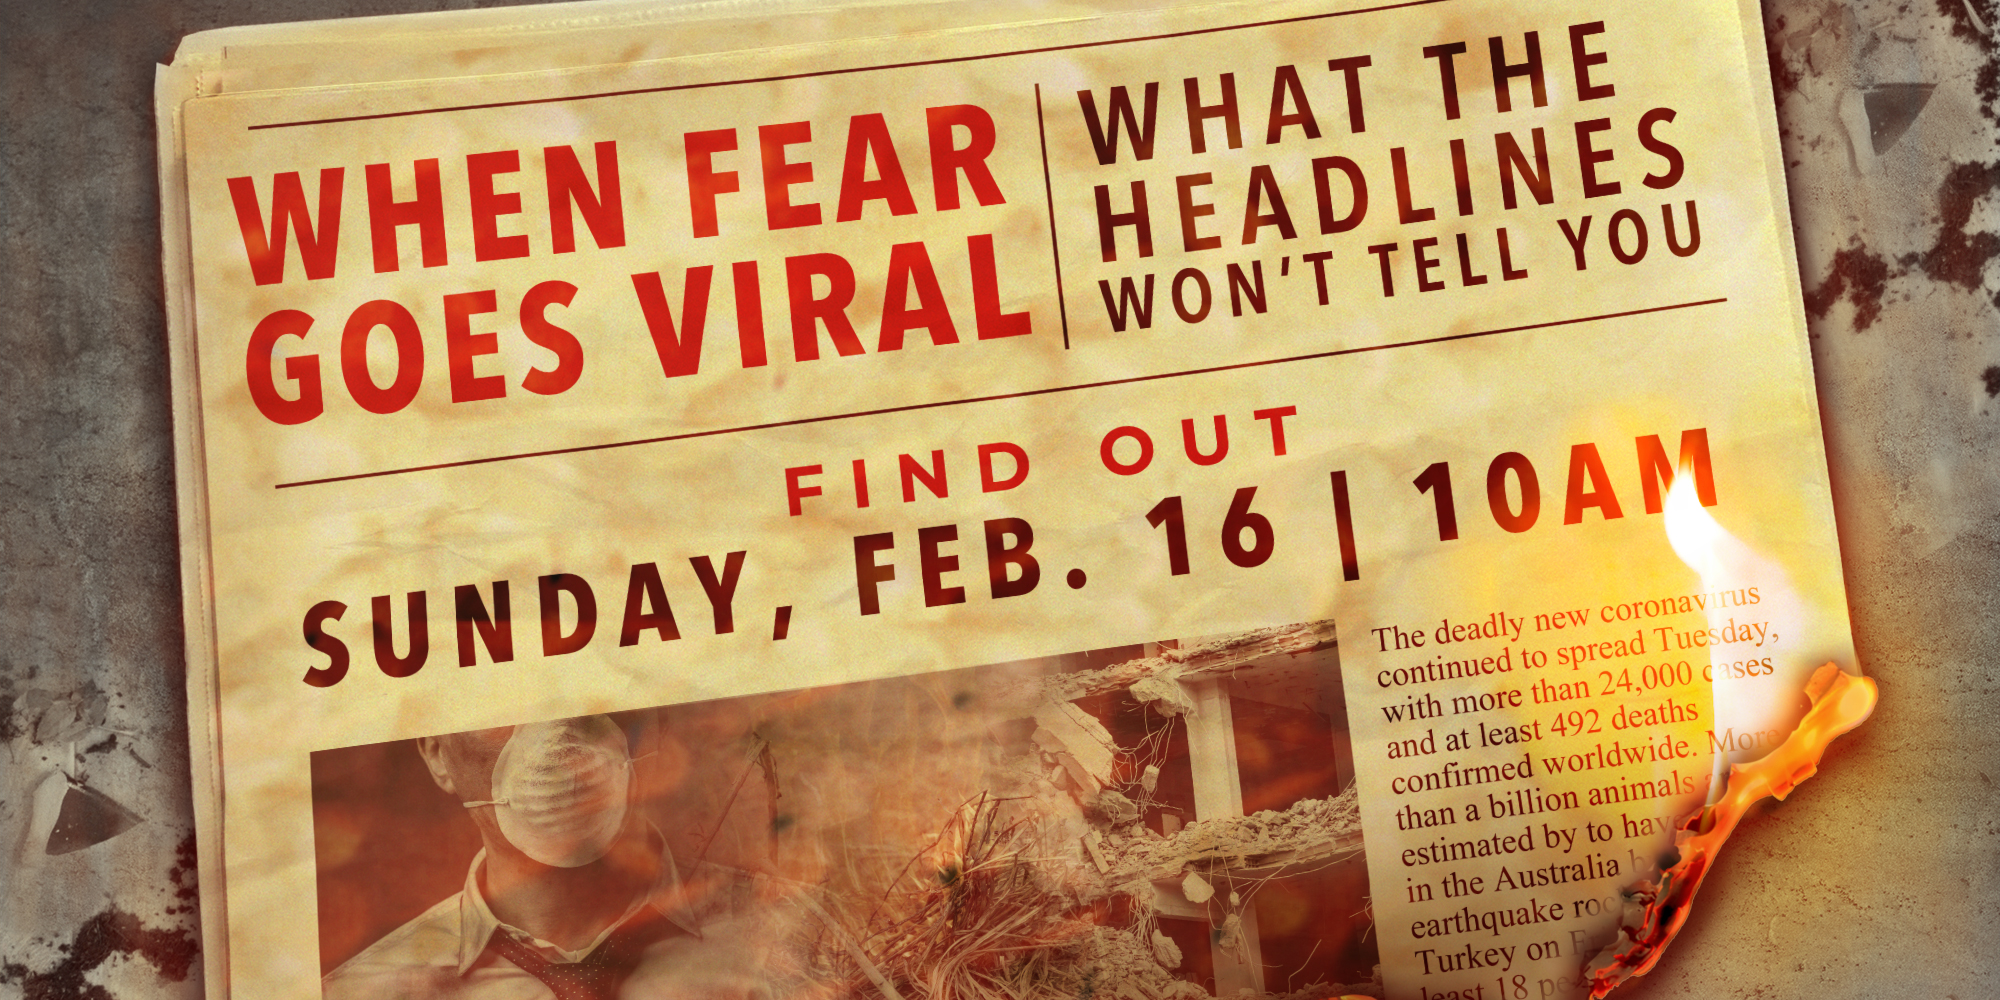 When Fear goes Viral